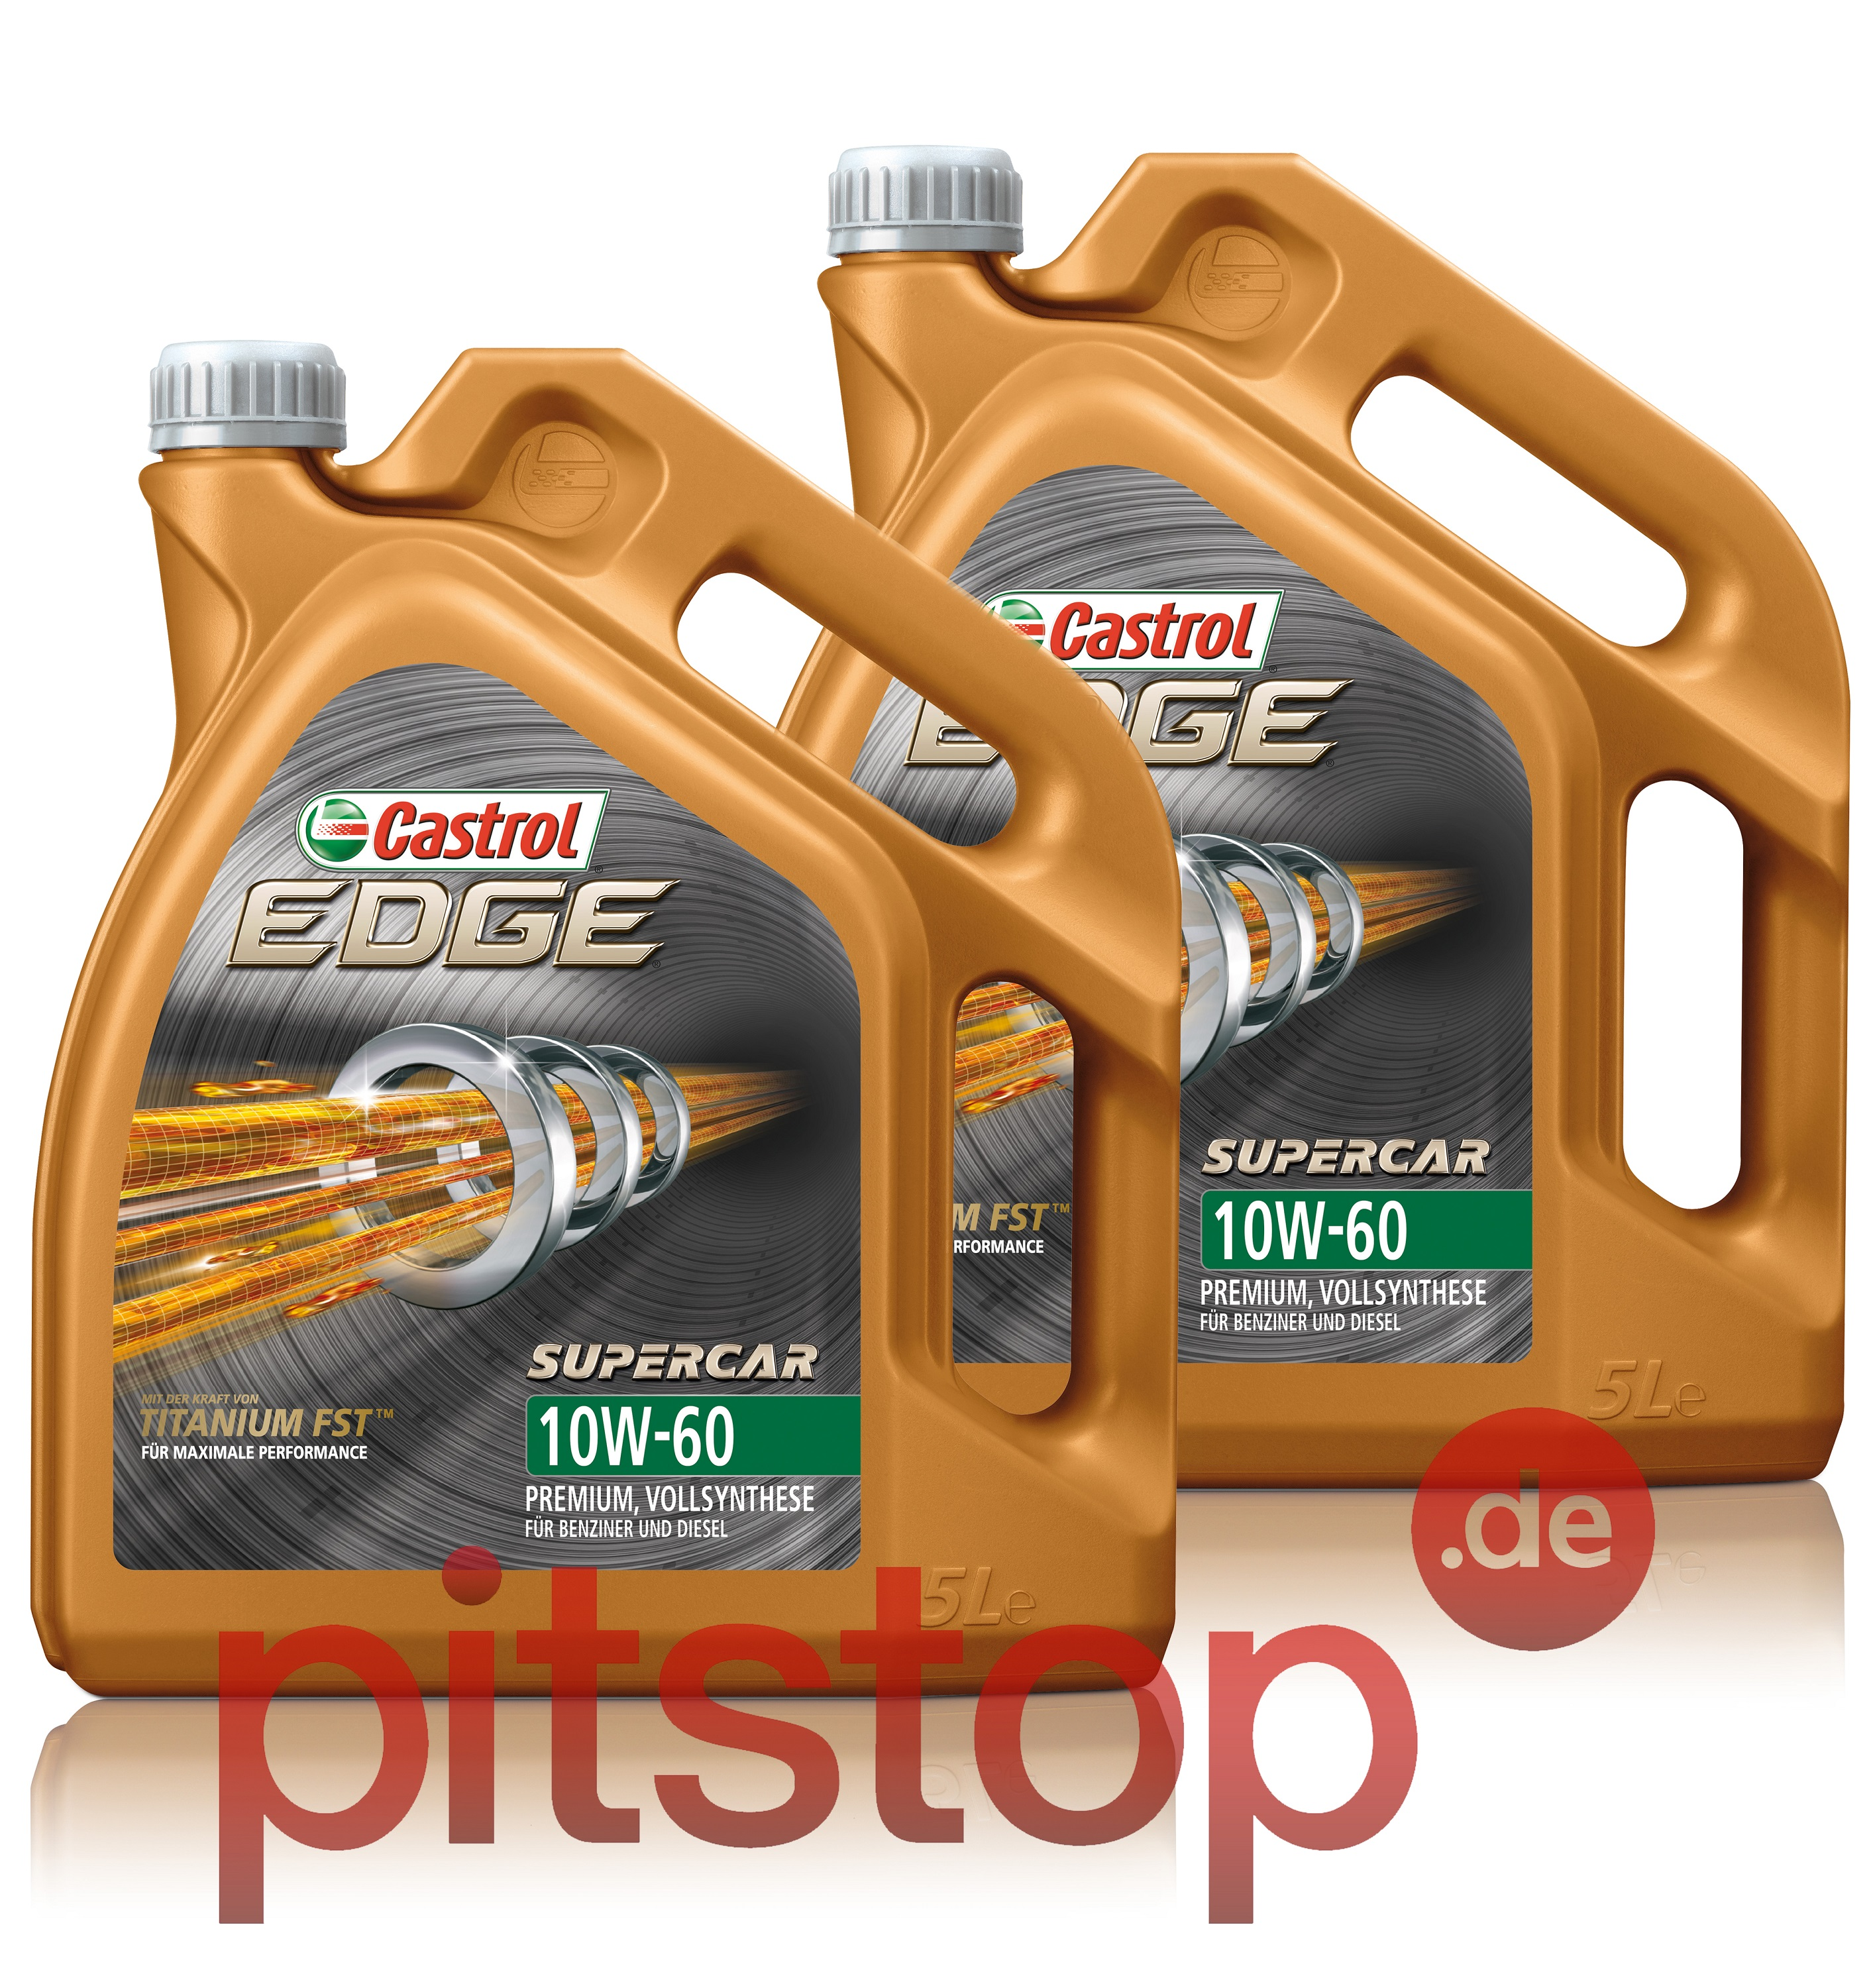 2x 5l 10 liter castrol edge titanium fst supercar 10w 60. Black Bedroom Furniture Sets. Home Design Ideas